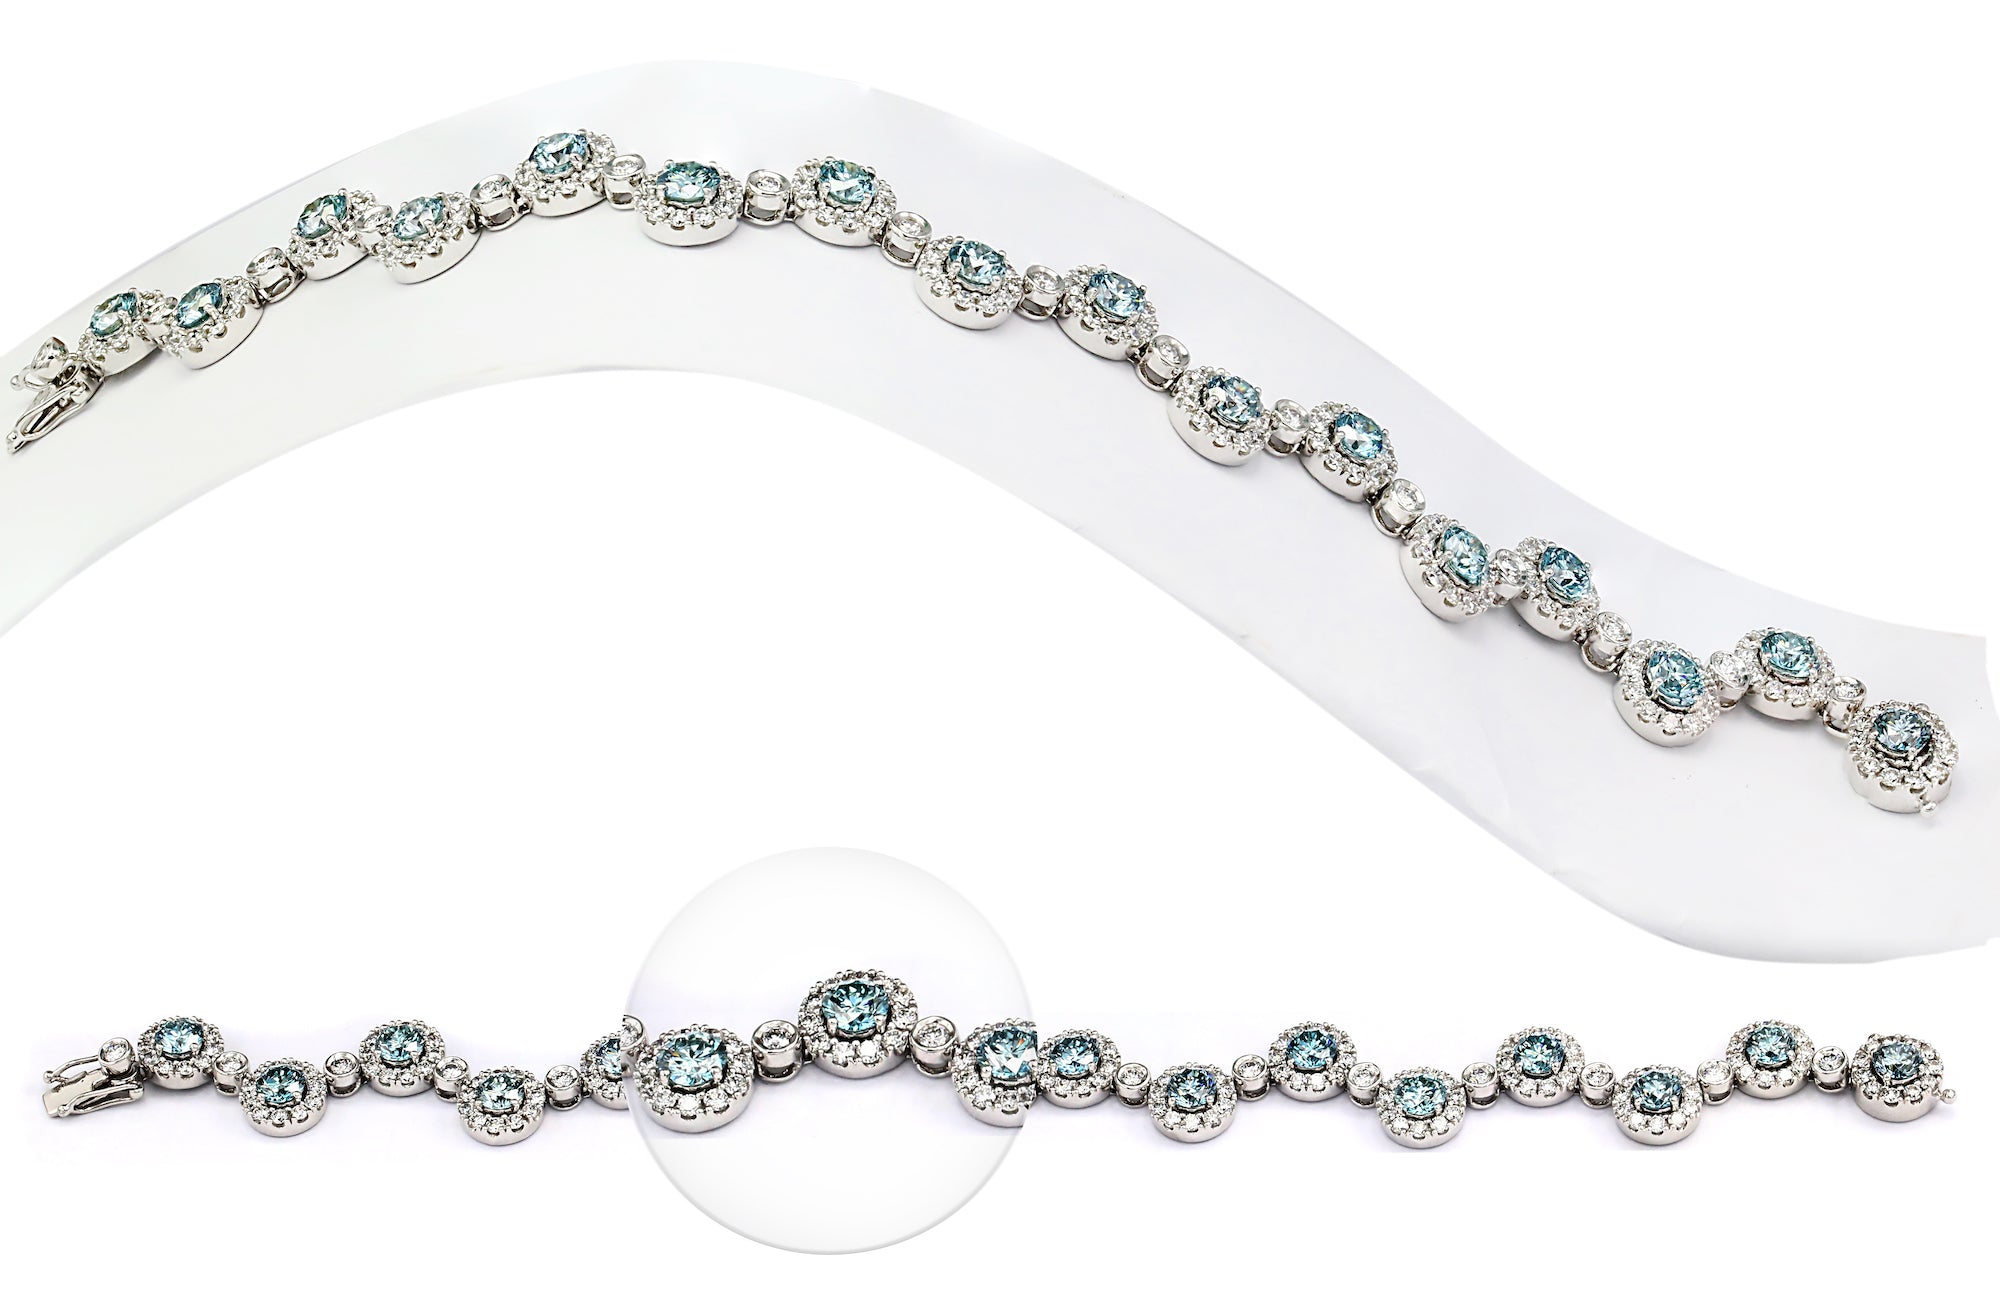 14K White Gold 13.60CTTW Ice Blue and White Lab Grown Diamond Zigzag Bracelet